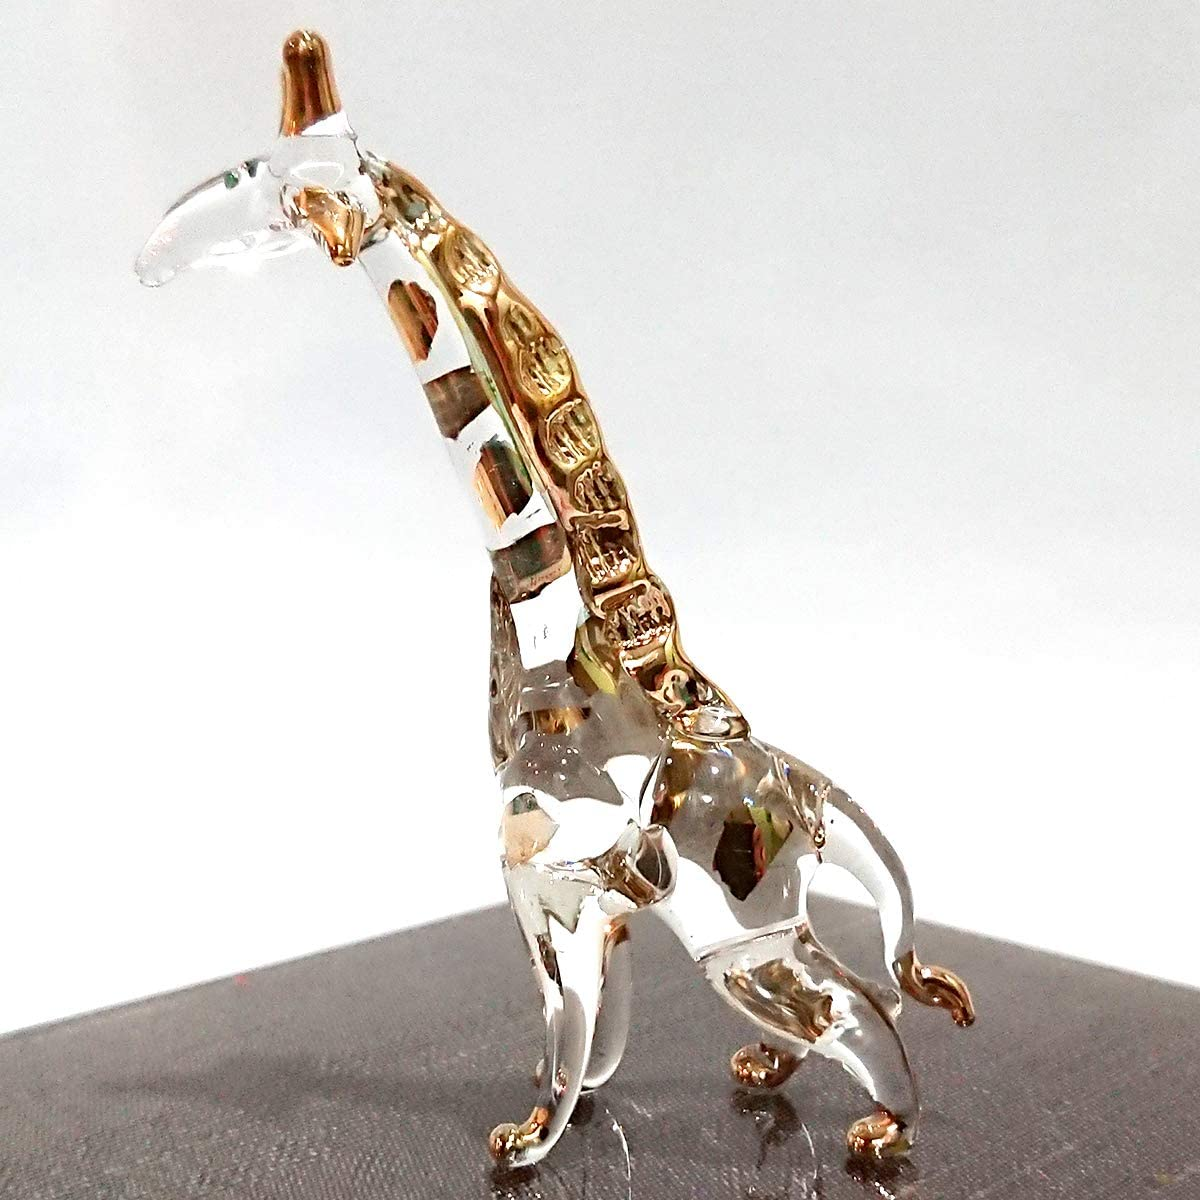 Sansukjai Giraffe Miniature Figurines Animals Hand Blown Glass Art 22k Gold Trim Collectible Gift Decorate, Clear Gold